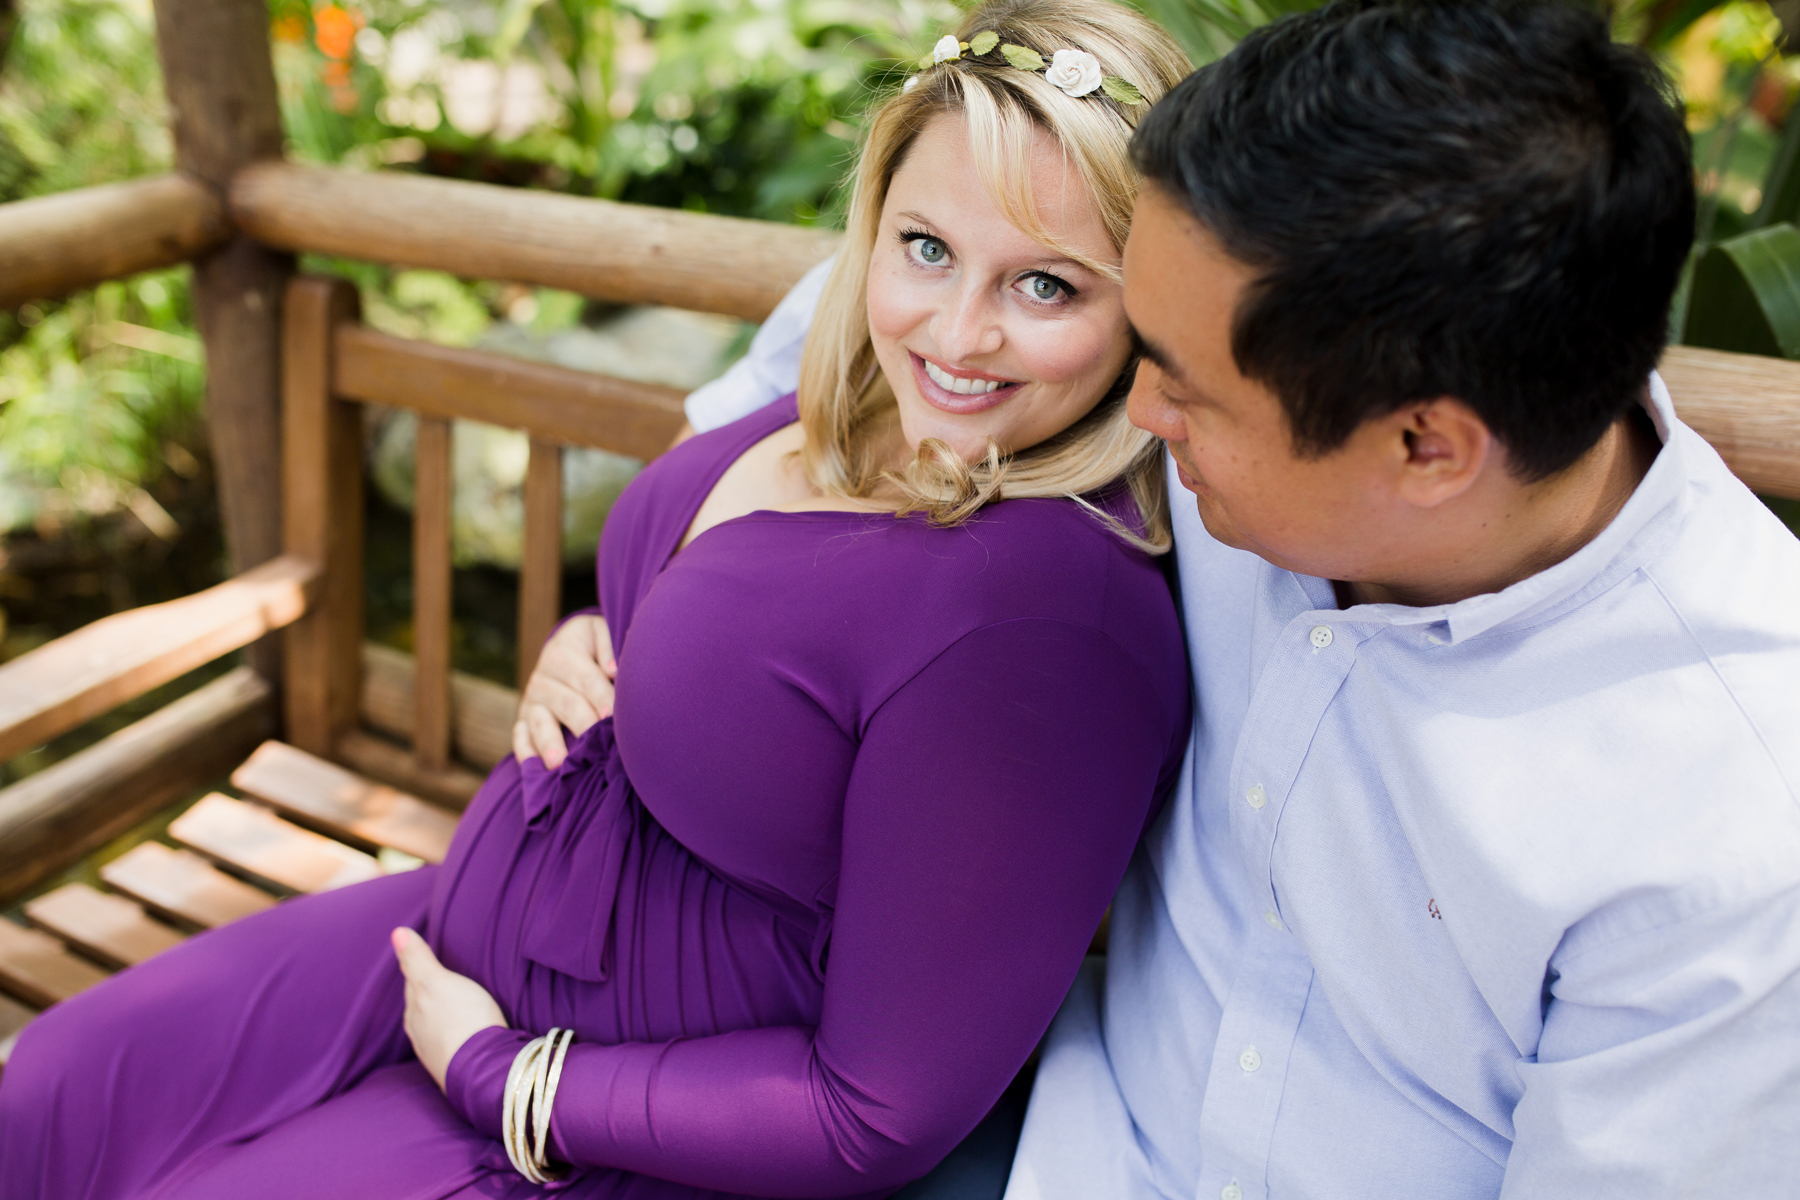 OKC_maternity_photography_lifestyle_session.jpg